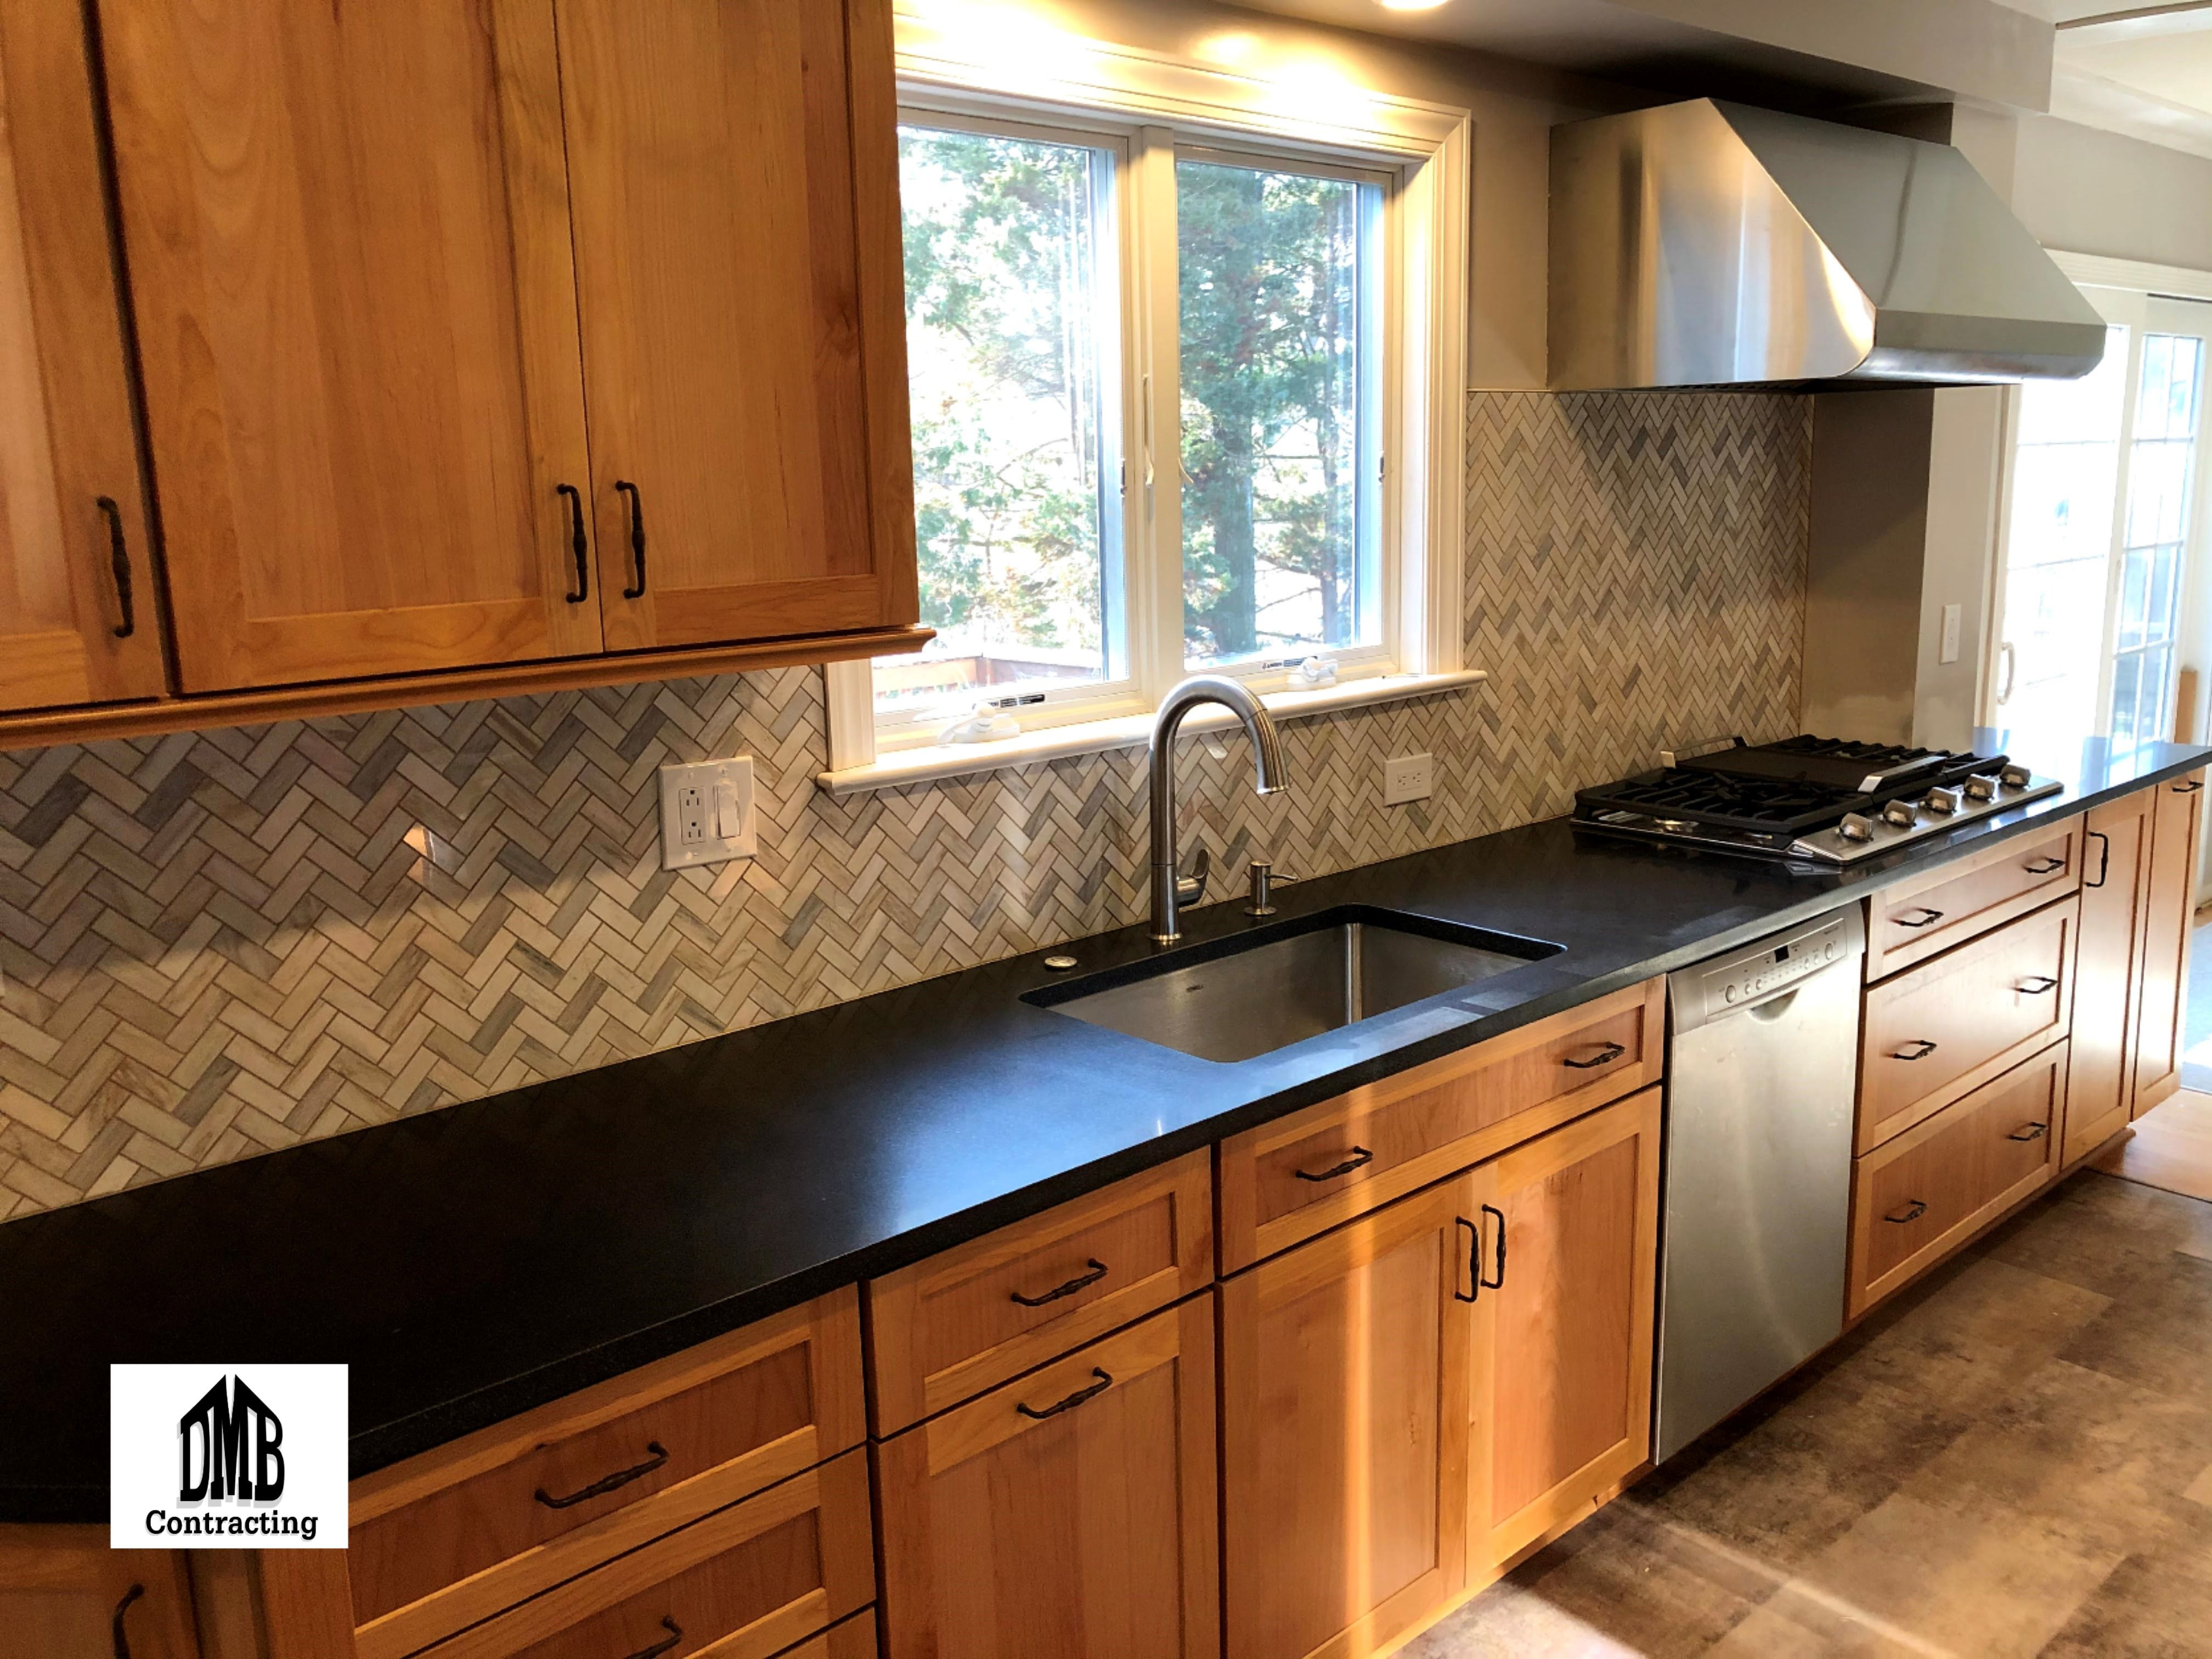 simple black countertops paired with a herringbone pattern backsplash in 2020 black kitchen on kitchen decor black countertop id=83533